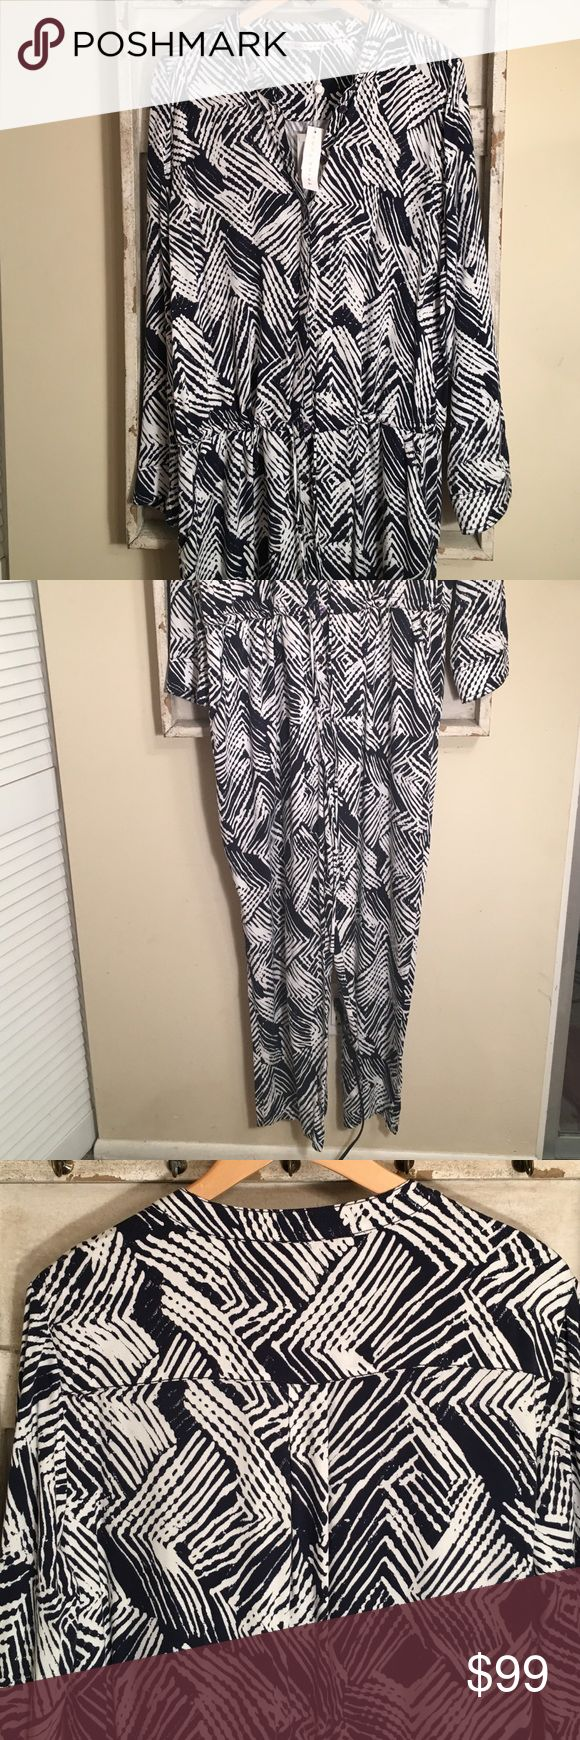 Trina Turk jumpsuit NWT Drawstring waist....side pockets...tags are on this item but the price is missing Trina Turk Pants Jumpsuits & Rompers